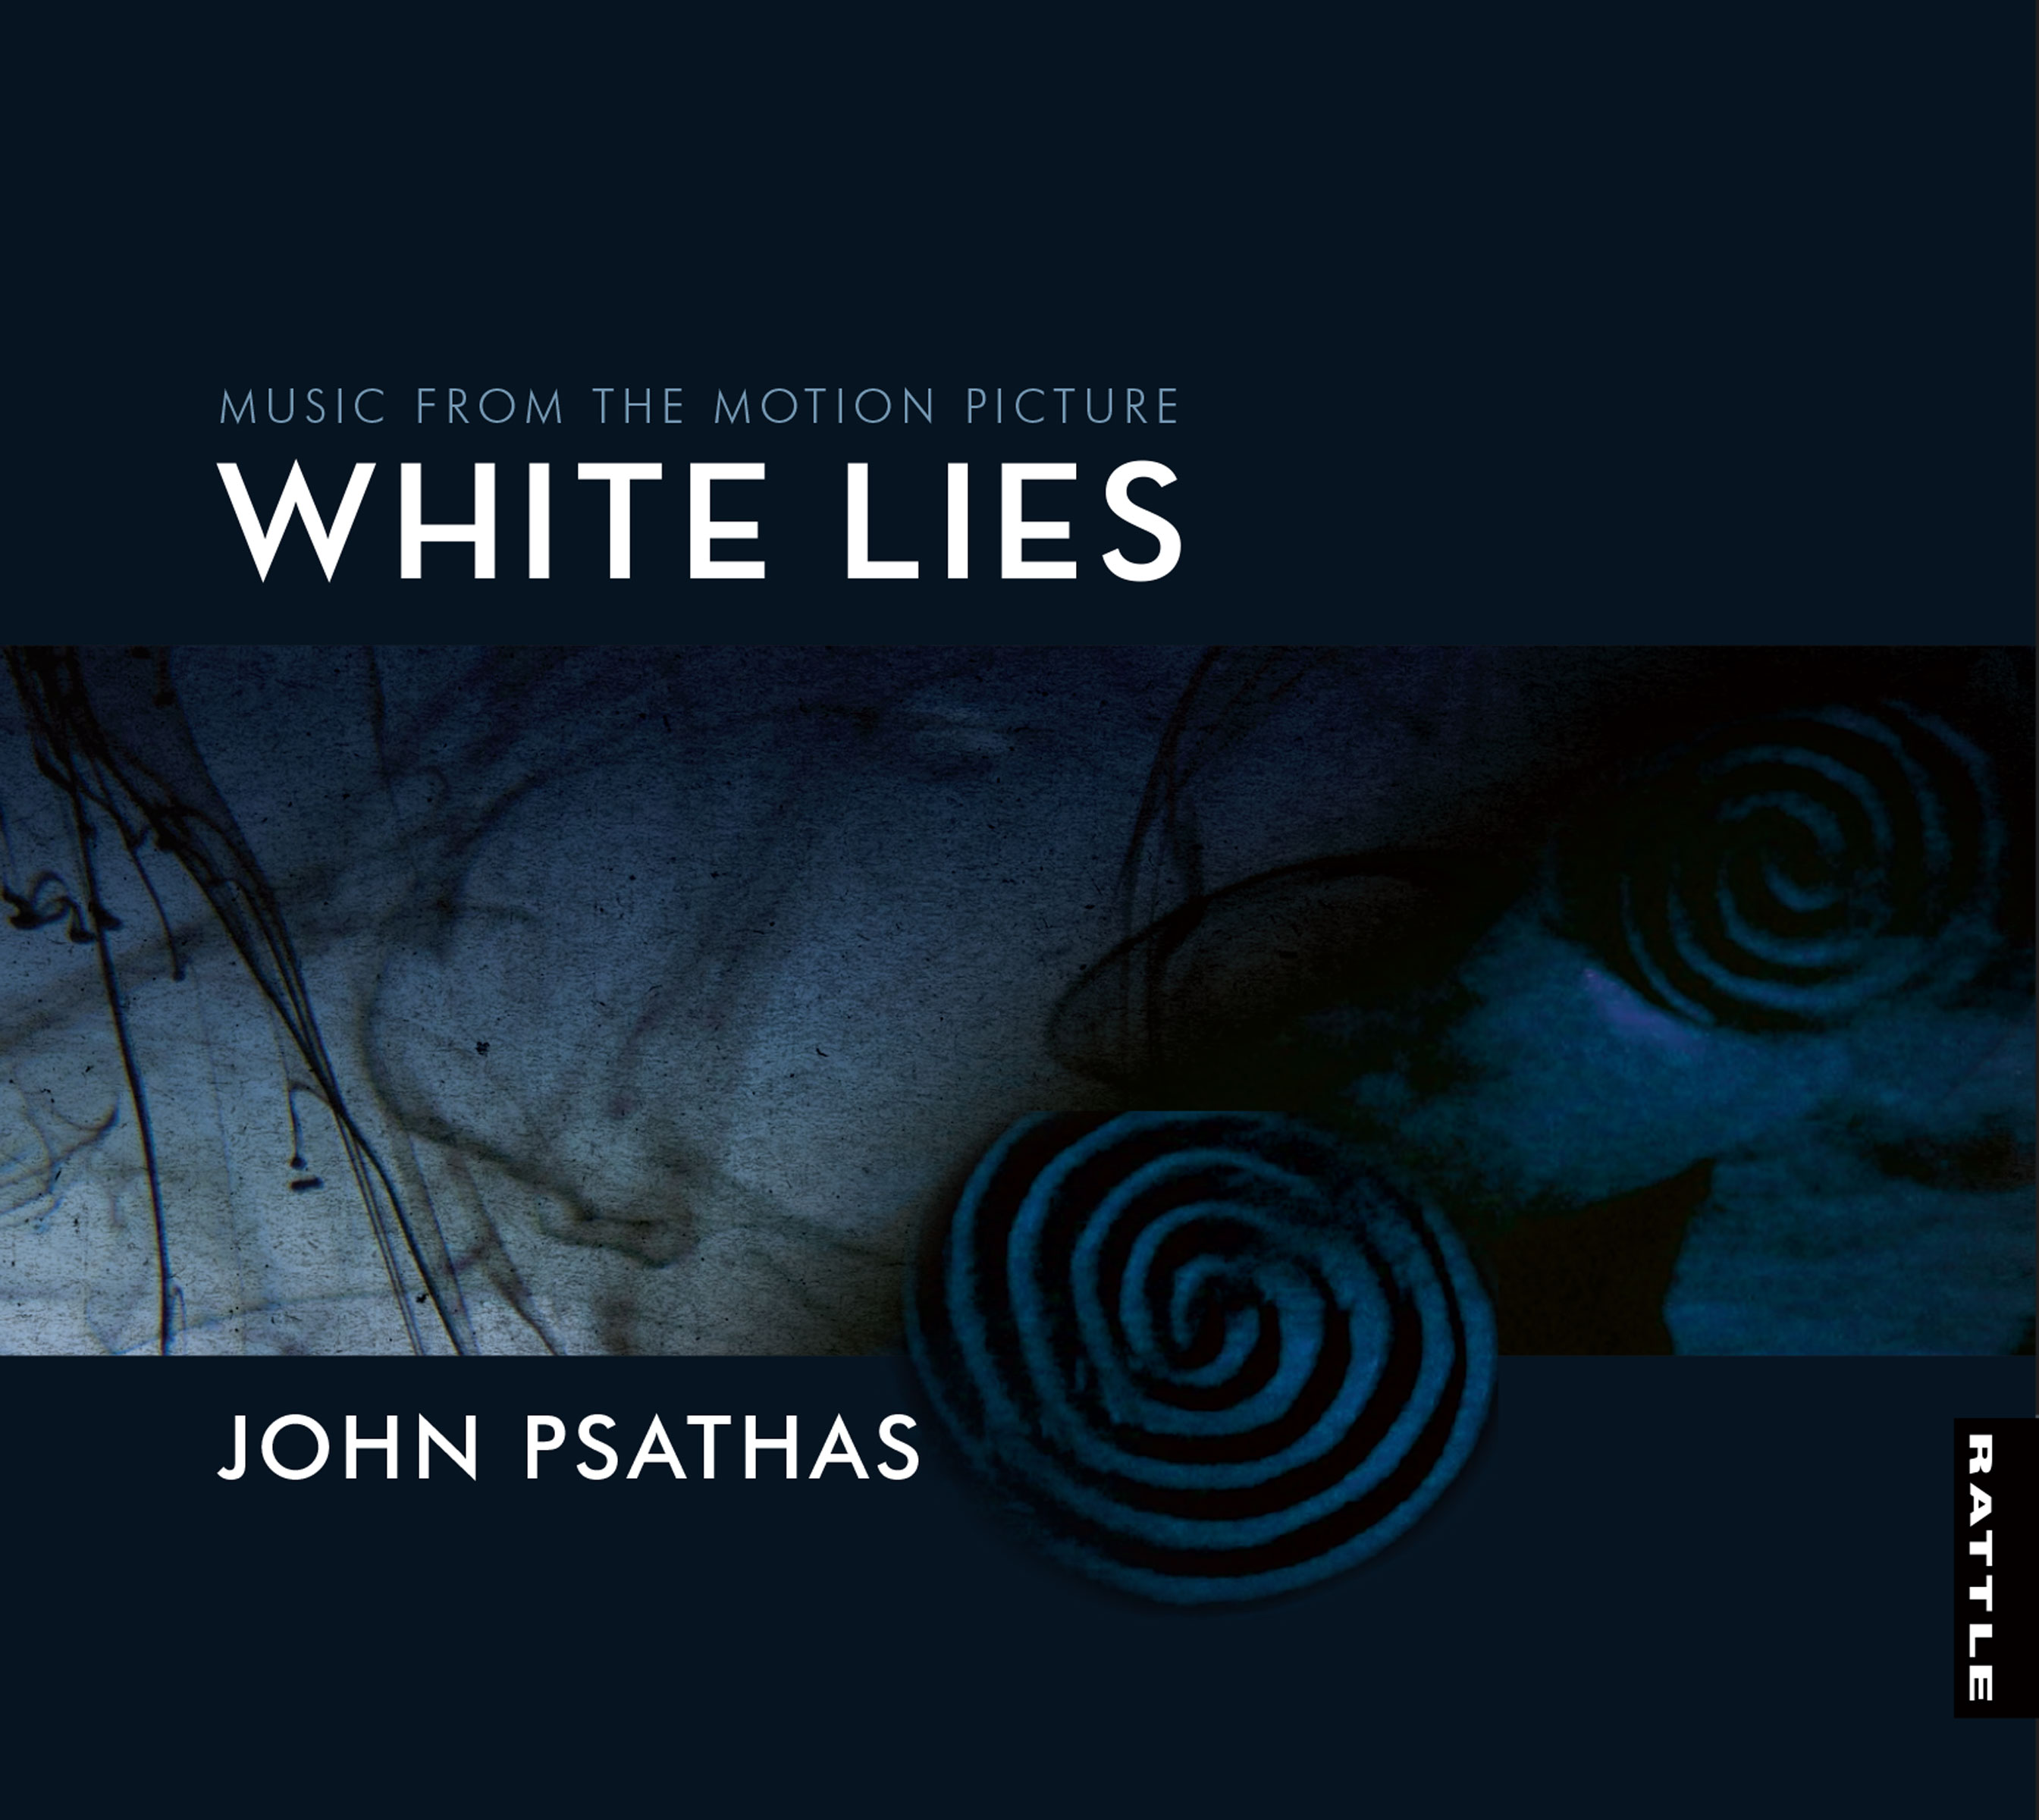 John Psathas | White Lies - downloadable MP3 ALBUM